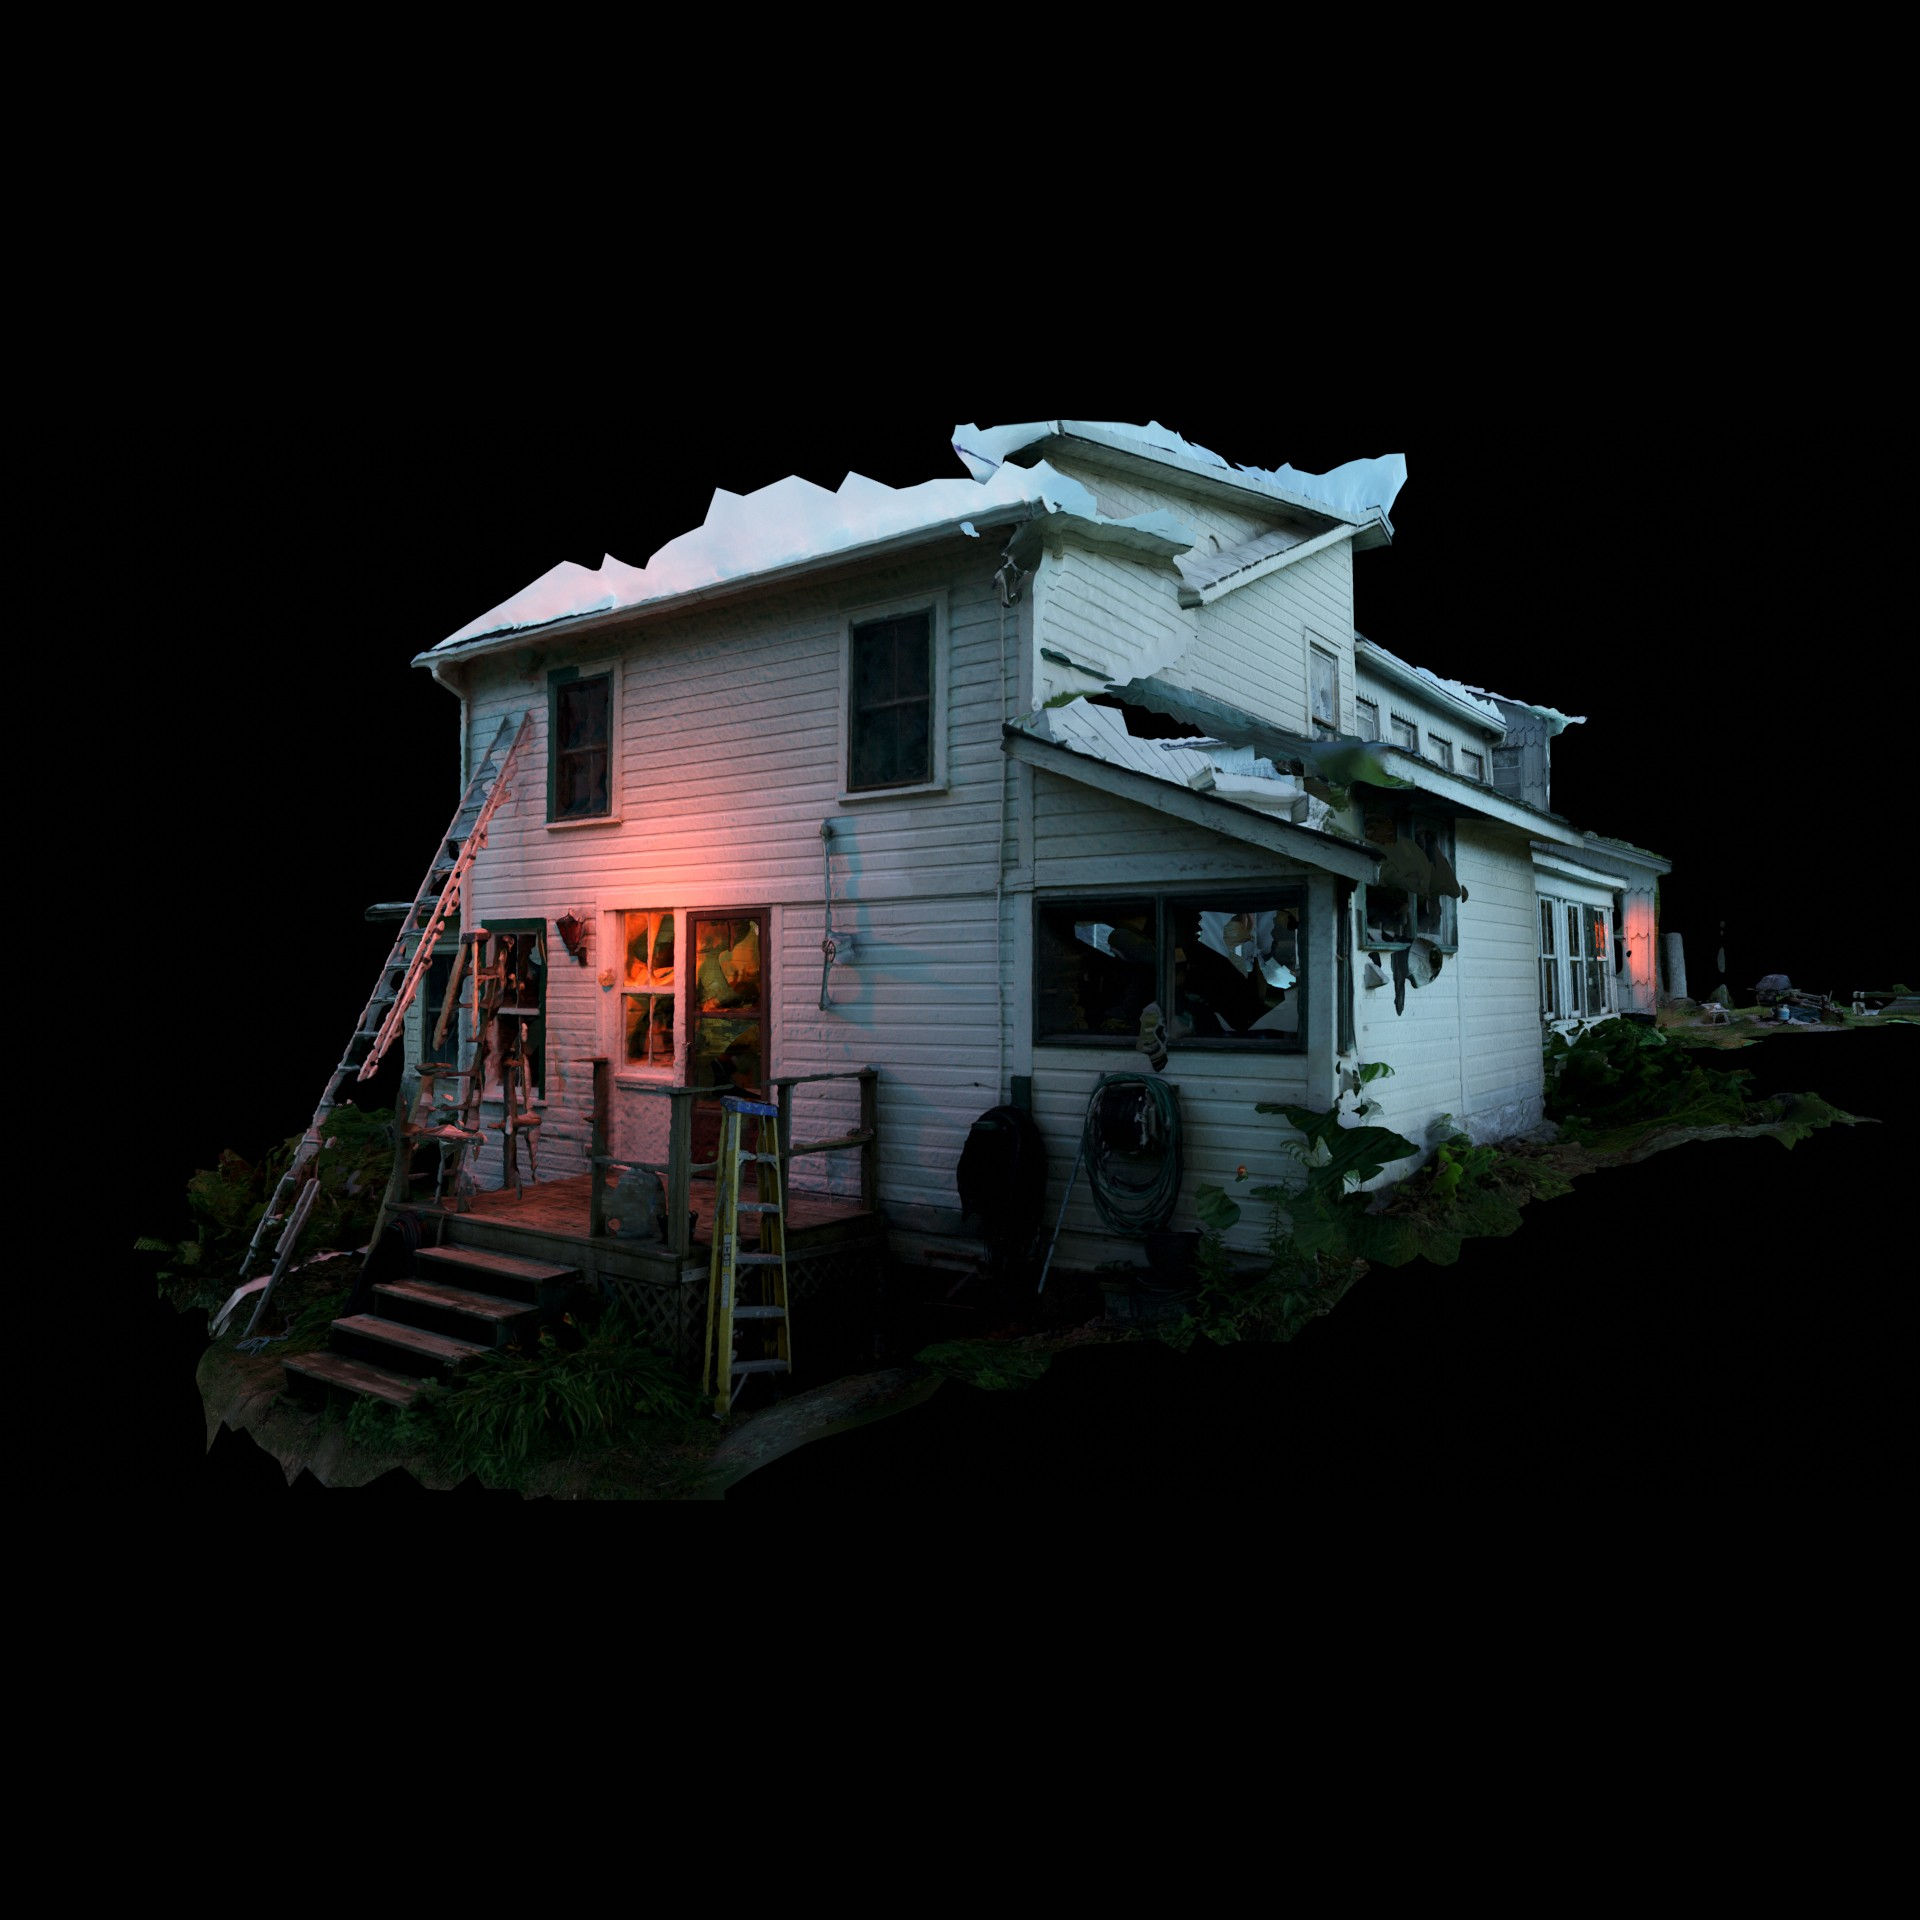 Image displays a cut out house on a black background.